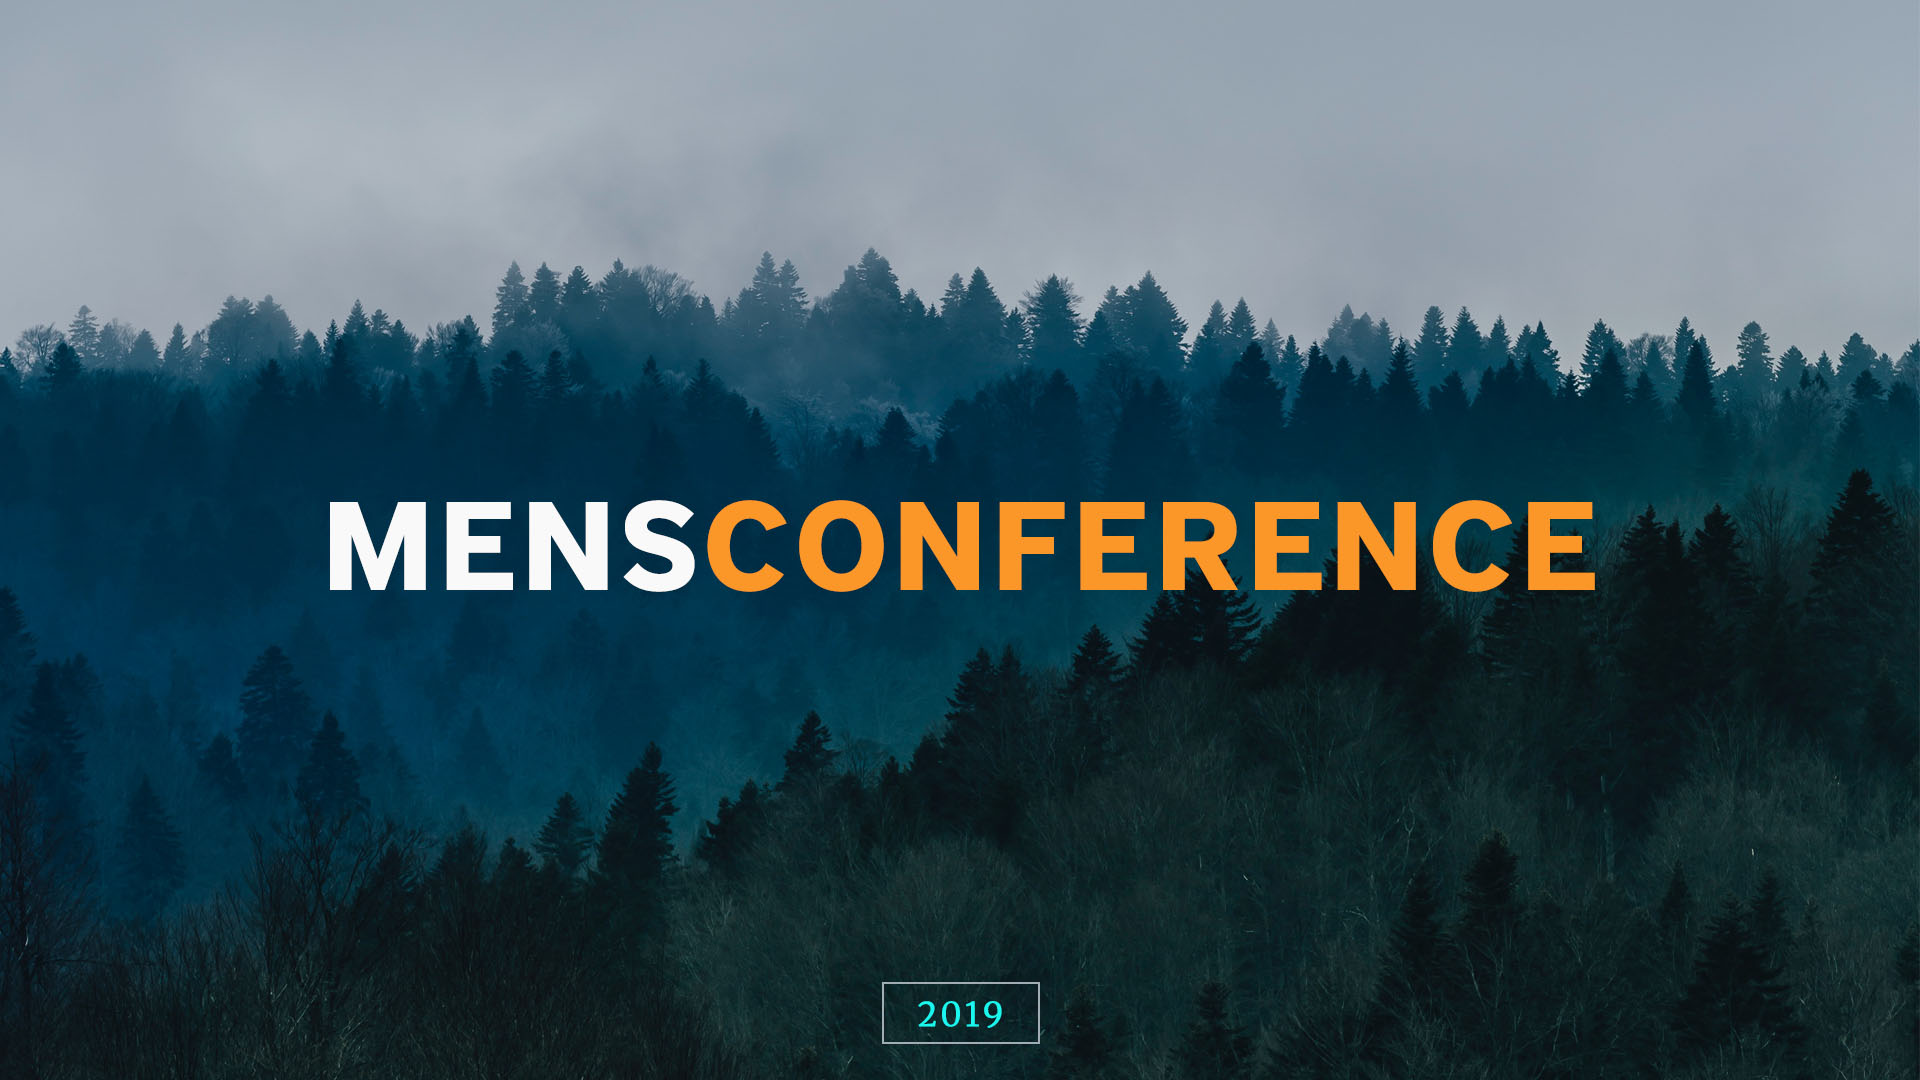 Men's Conference 2019